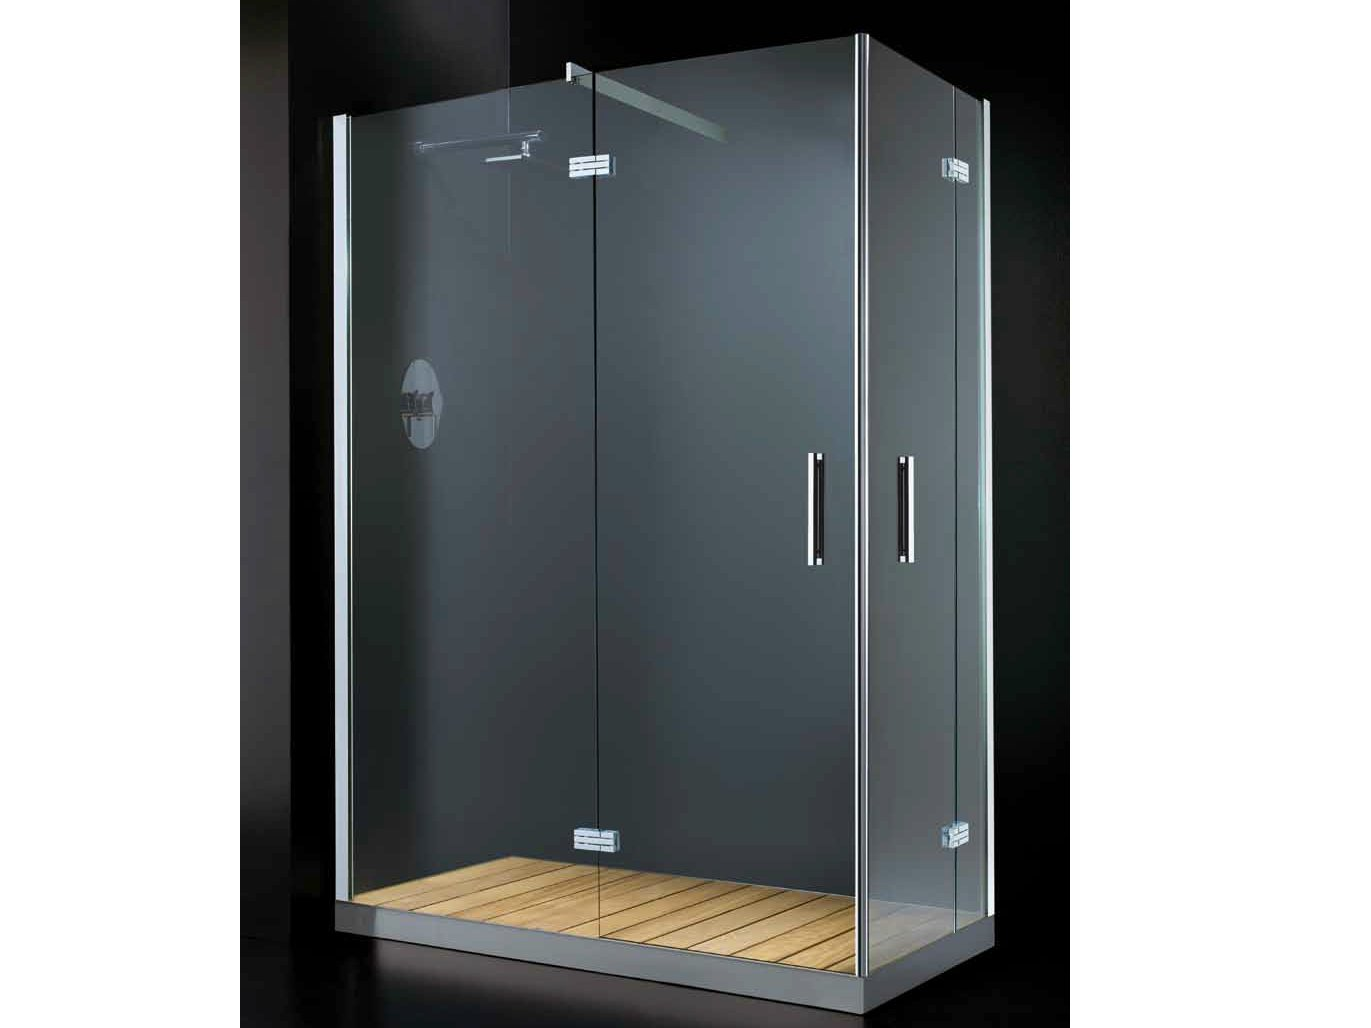 cabine de douche d 39 angle rectangulaire avec porte battante elite a09 by rare. Black Bedroom Furniture Sets. Home Design Ideas